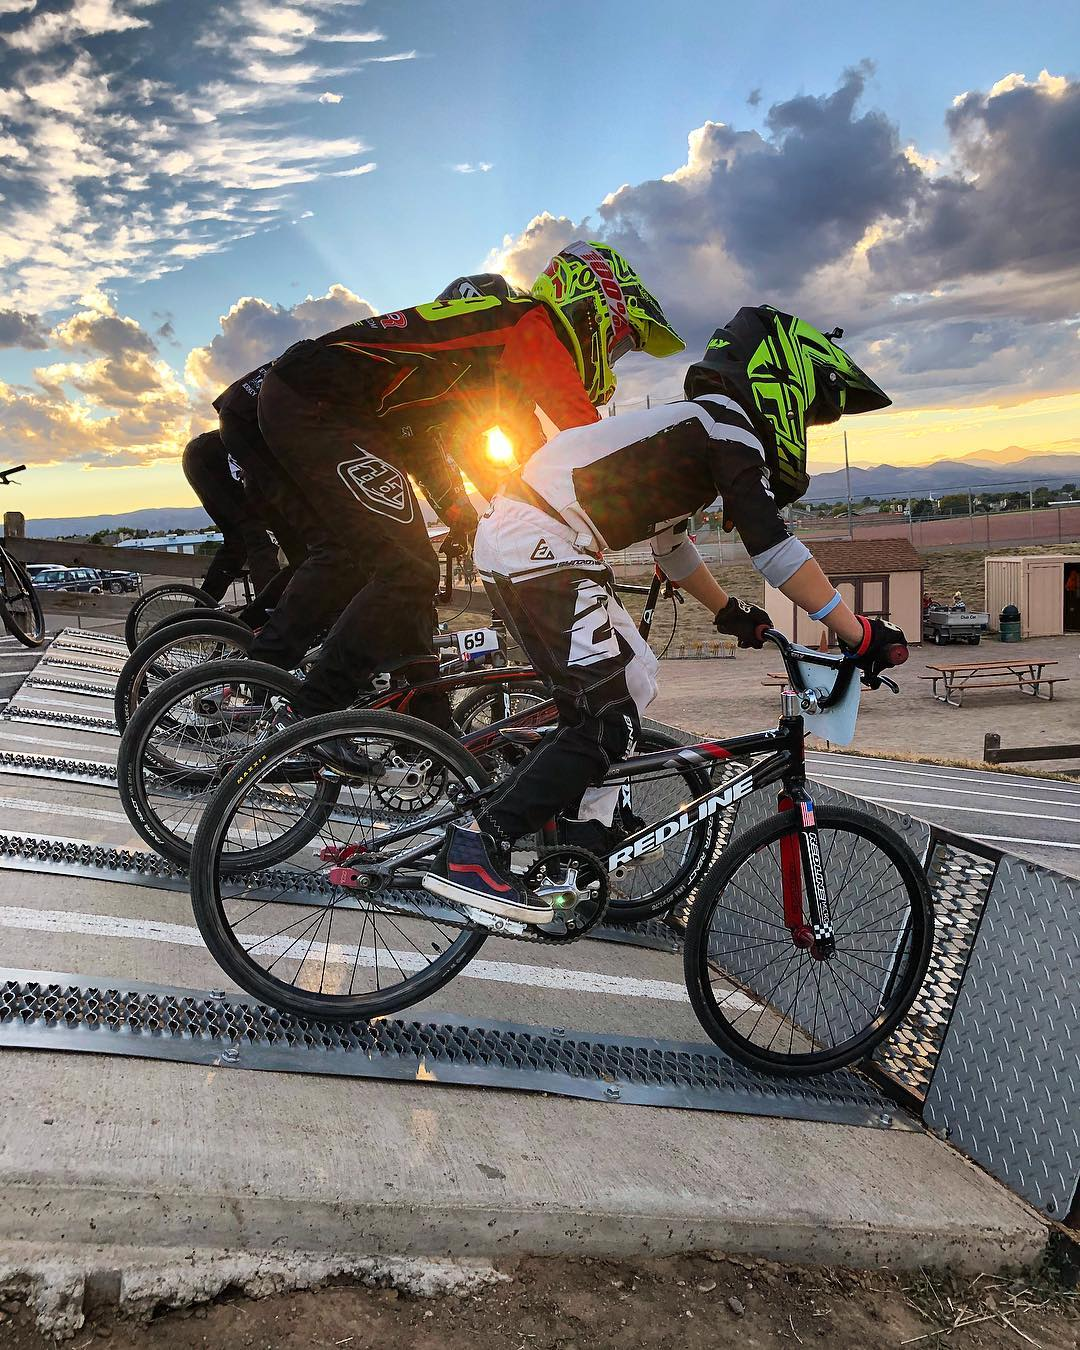 Image of BMX bikers at the County Line BMX at David A Lorenz Park in Highlands Ranch, Colorado